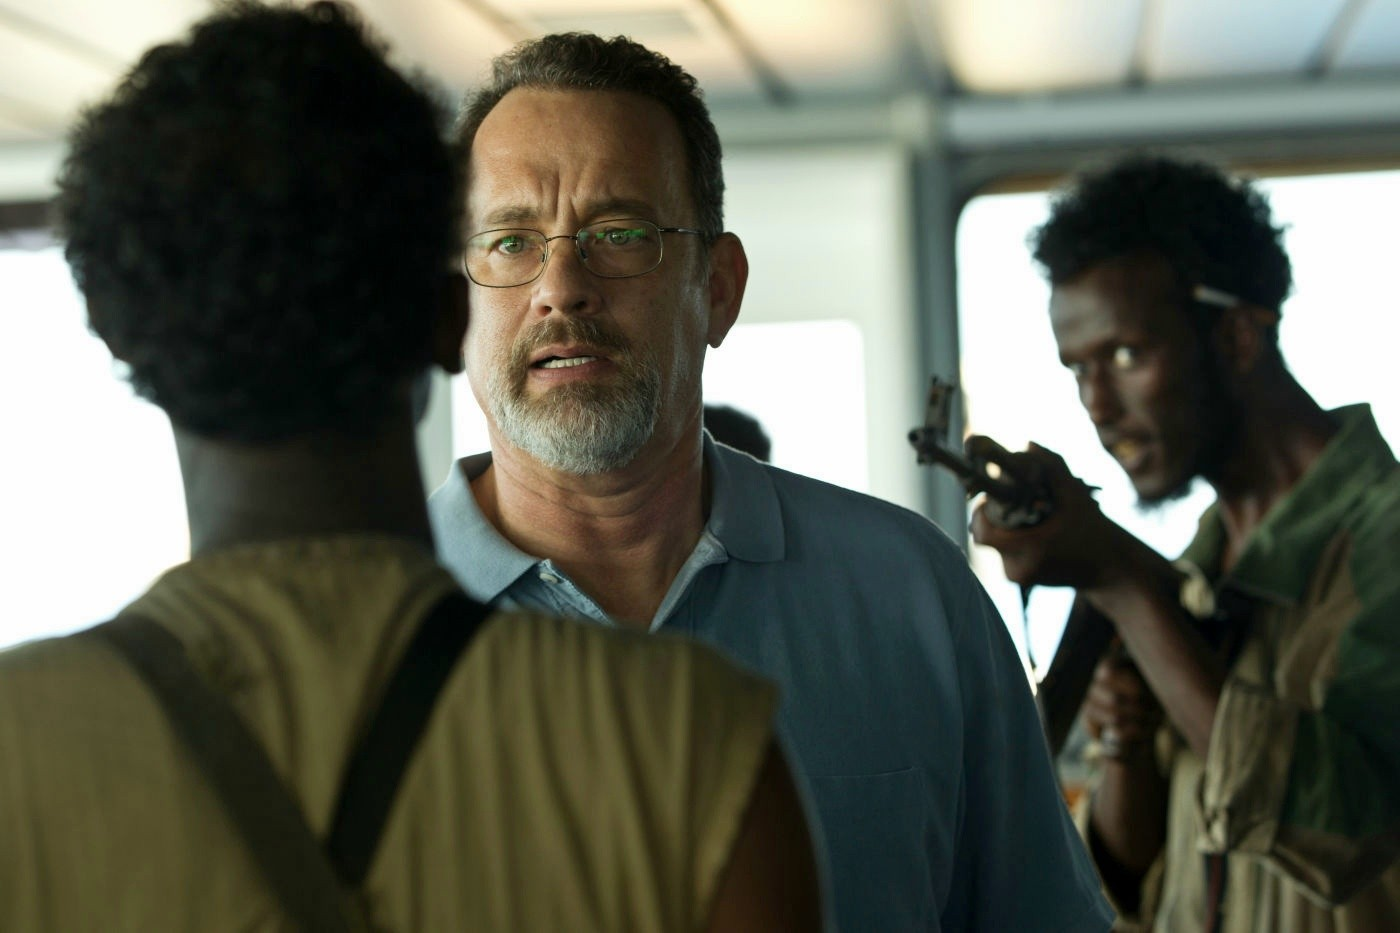 PHOTO CREDIT: Production still from  Captain Phillips.